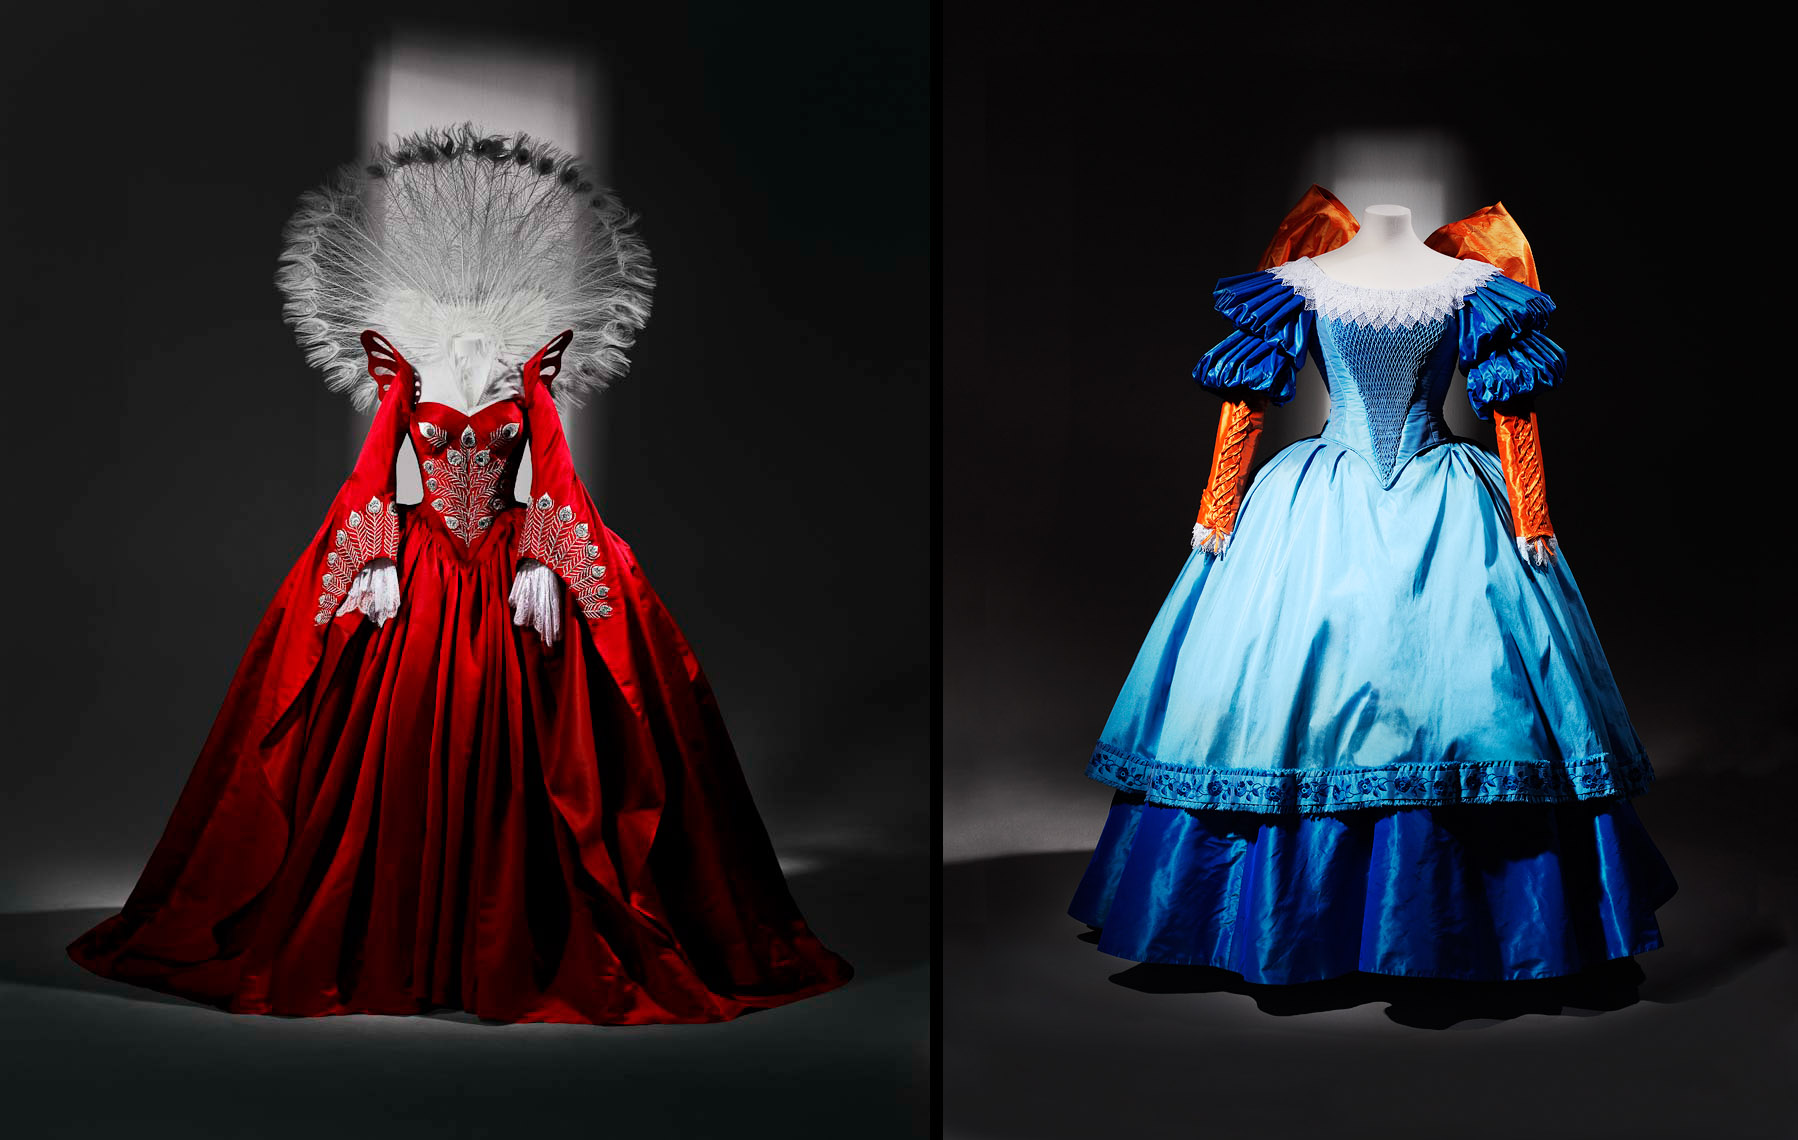 Costume Dress for Julia Roberts and Lily Collins as Snow White in Mirror Mirror